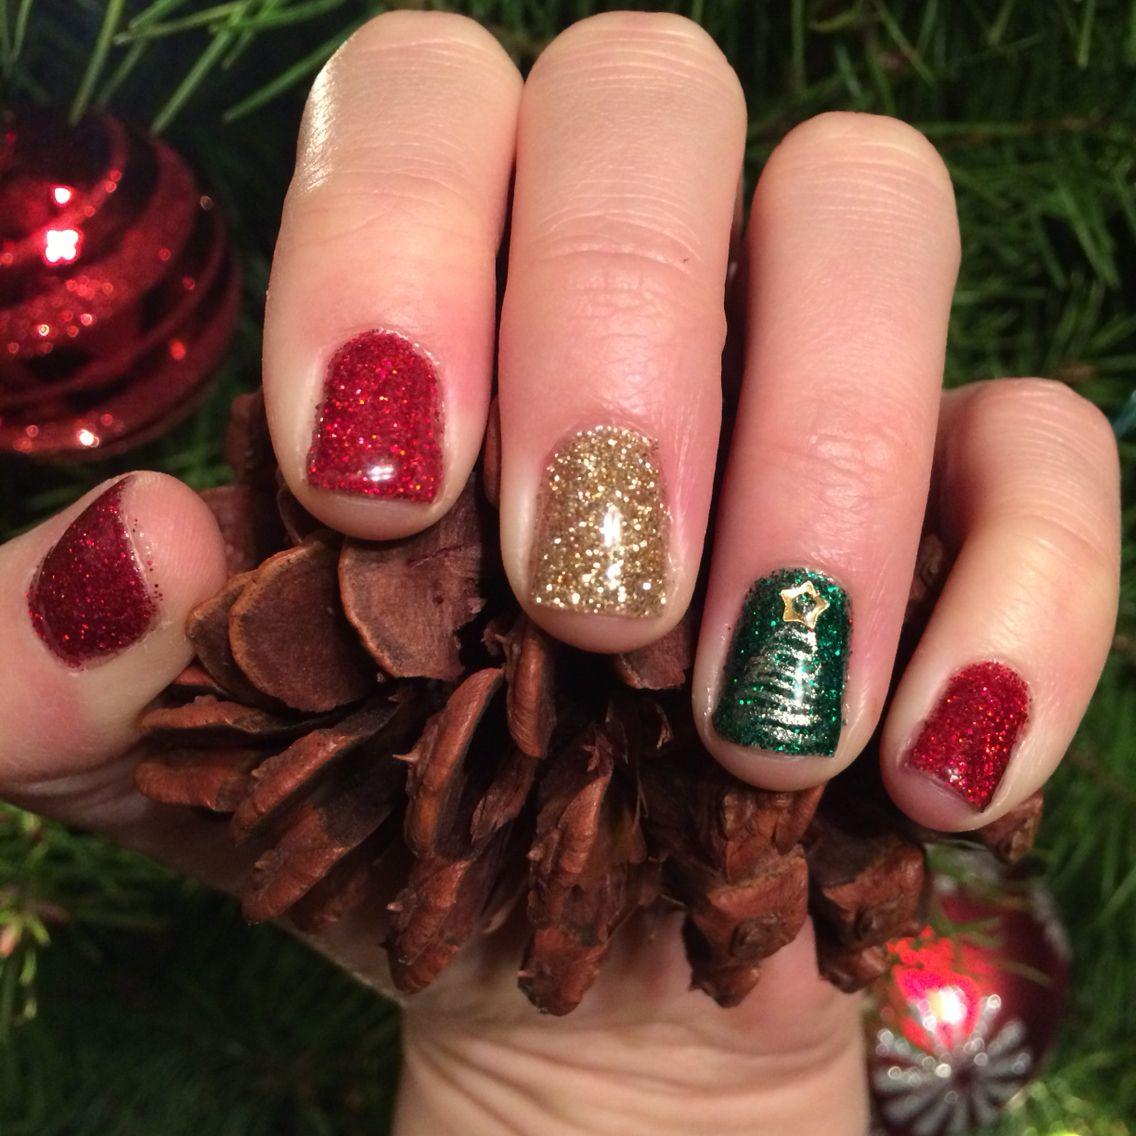 Christmas nails! Red, green, gold glitter, which Christmas